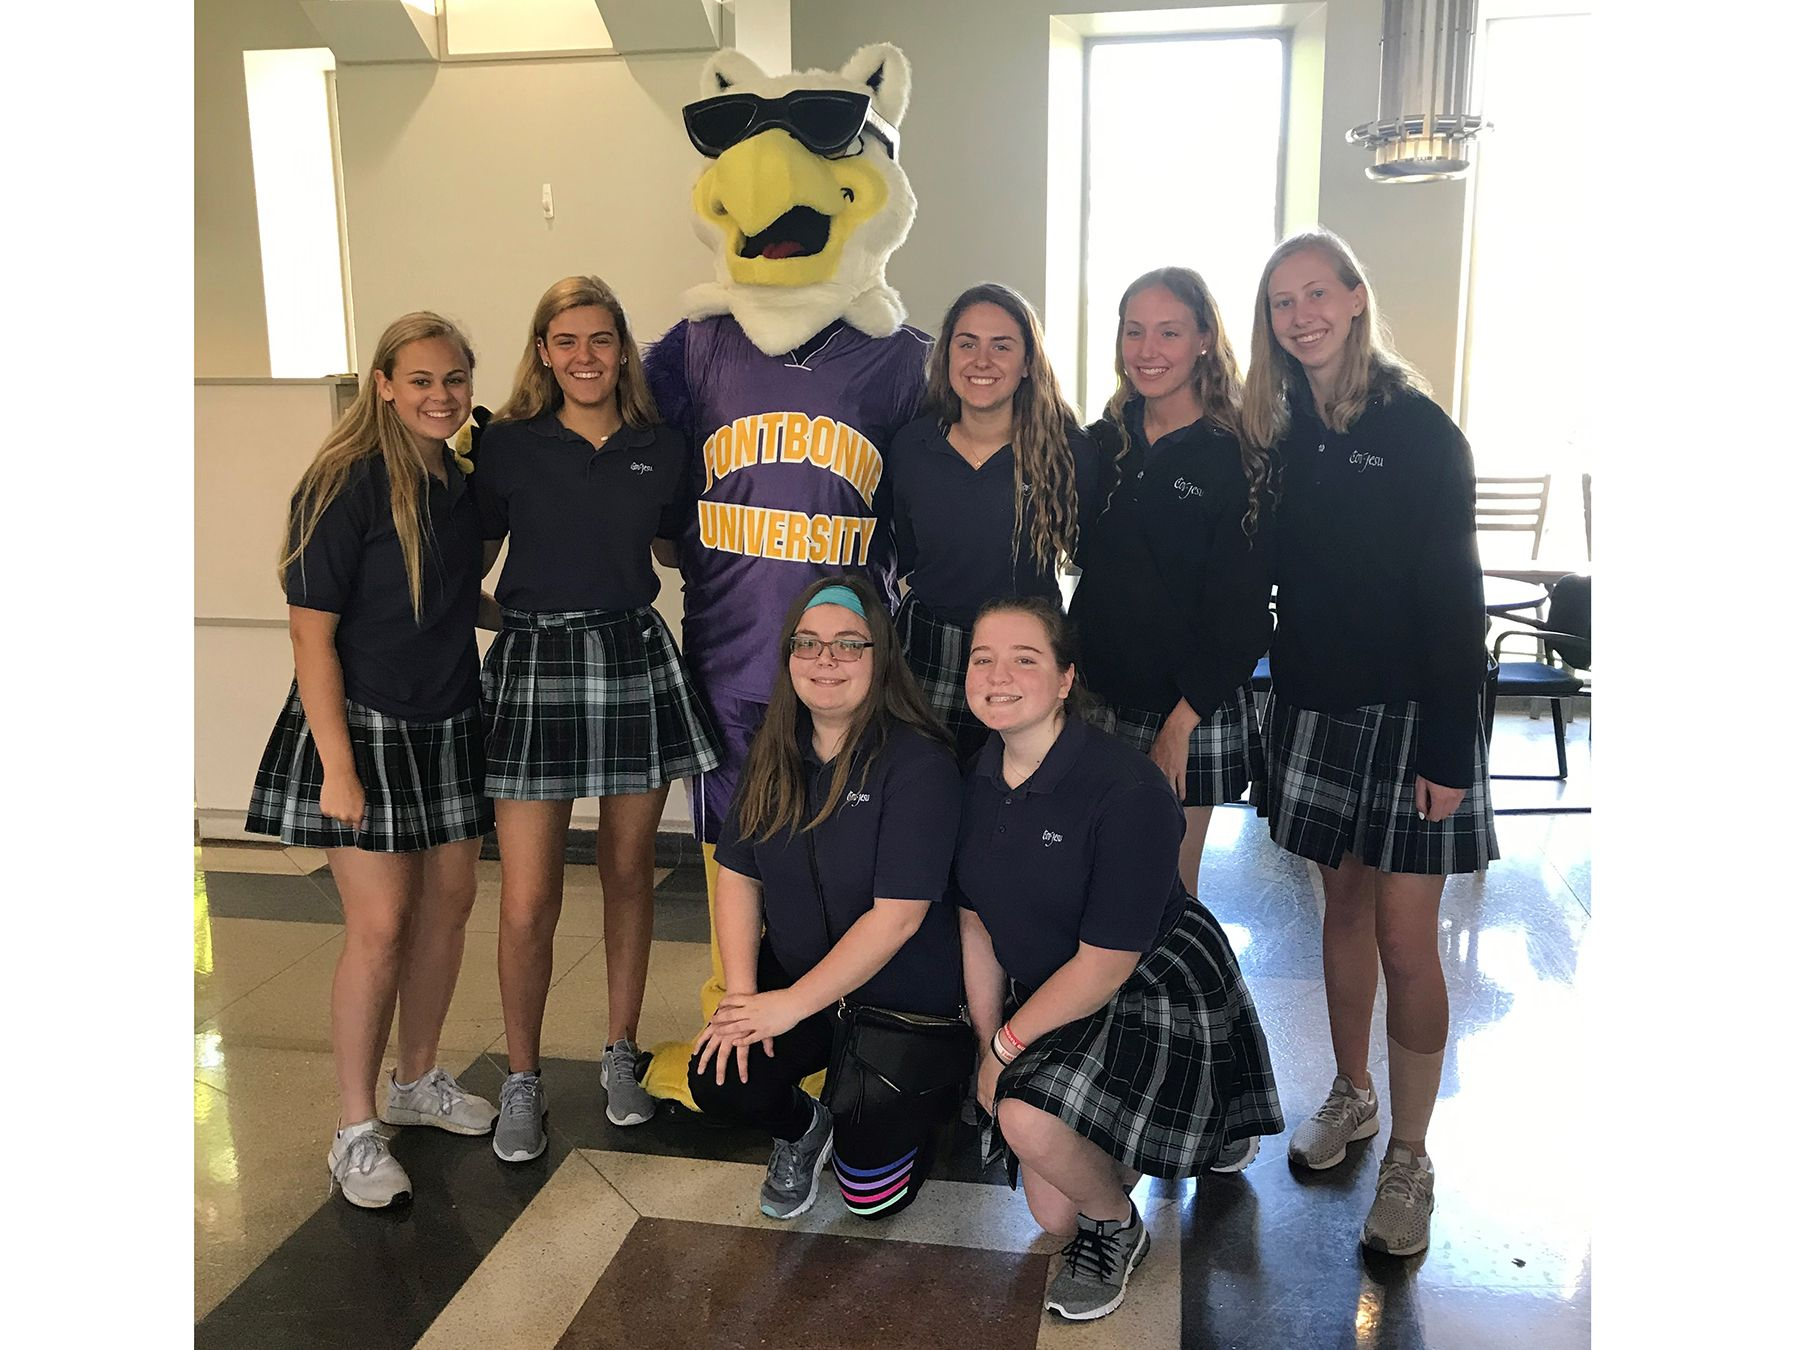 CJ Sophomores with the Fontbonne mascot